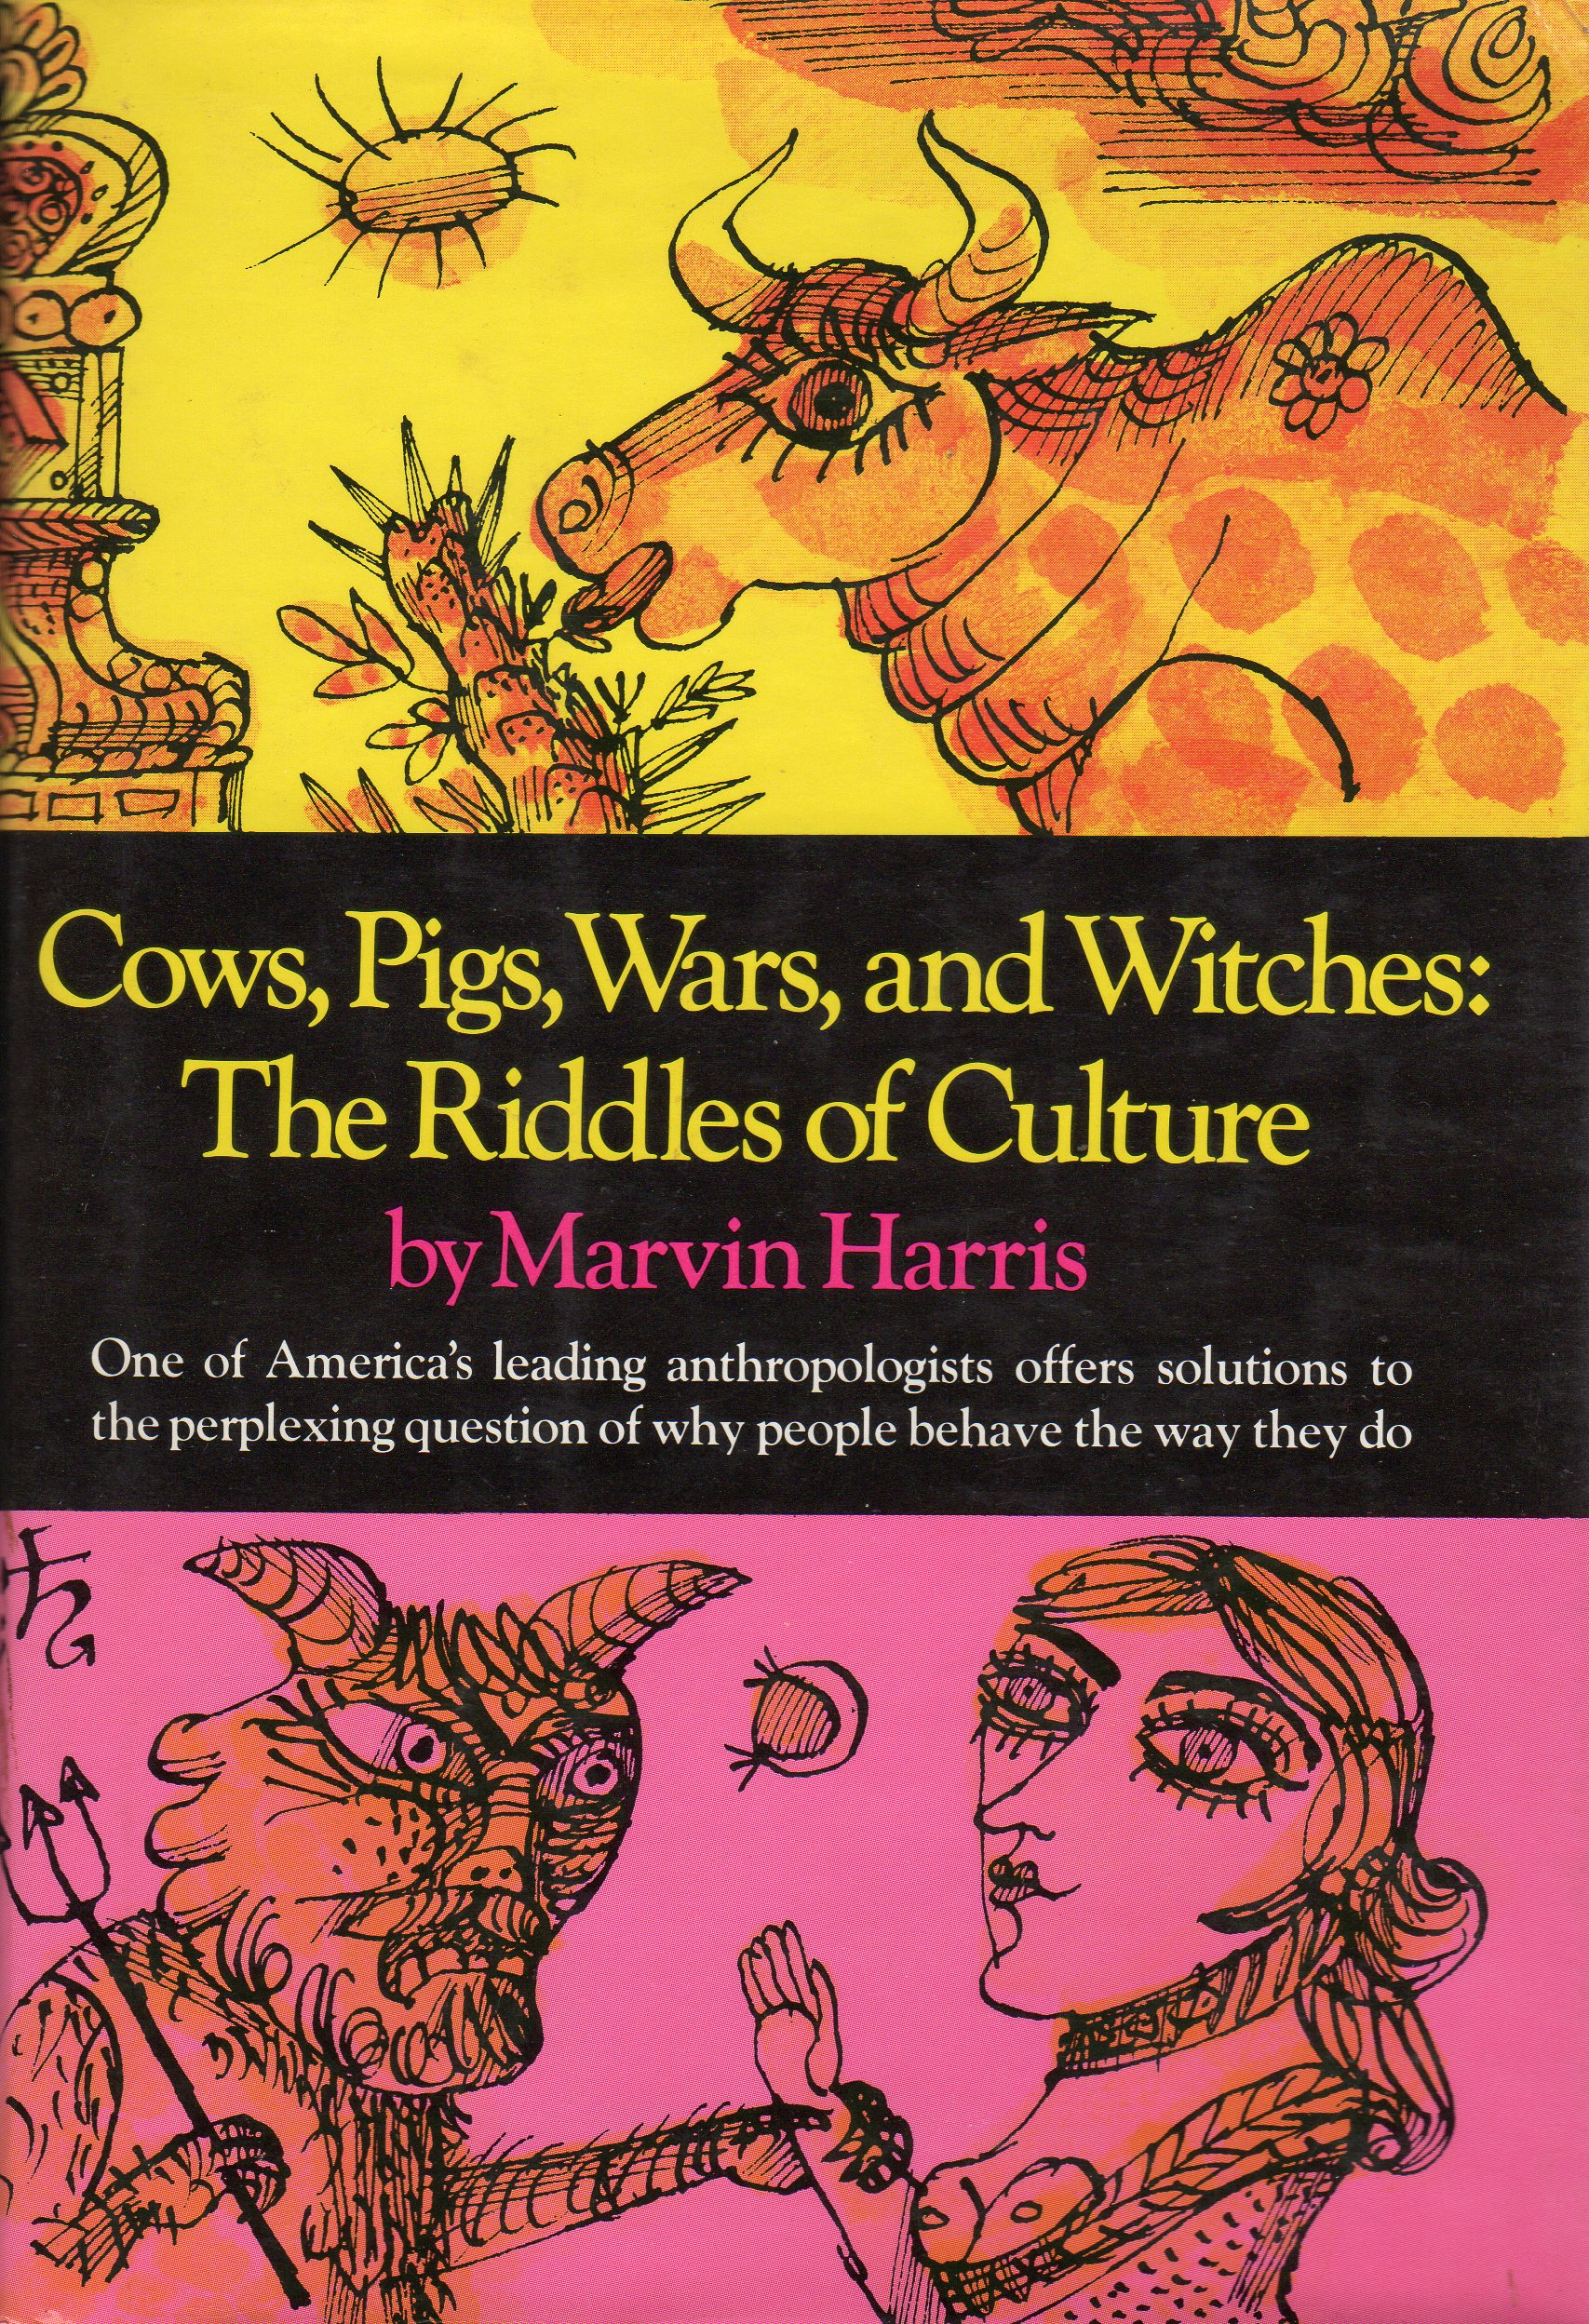 mother cow marvin harris Cows, pigs, wars, and witches: the riddles of culture [marvin harris] on amazoncom free shipping on qualifying offers one of america's leading anthropolgists.